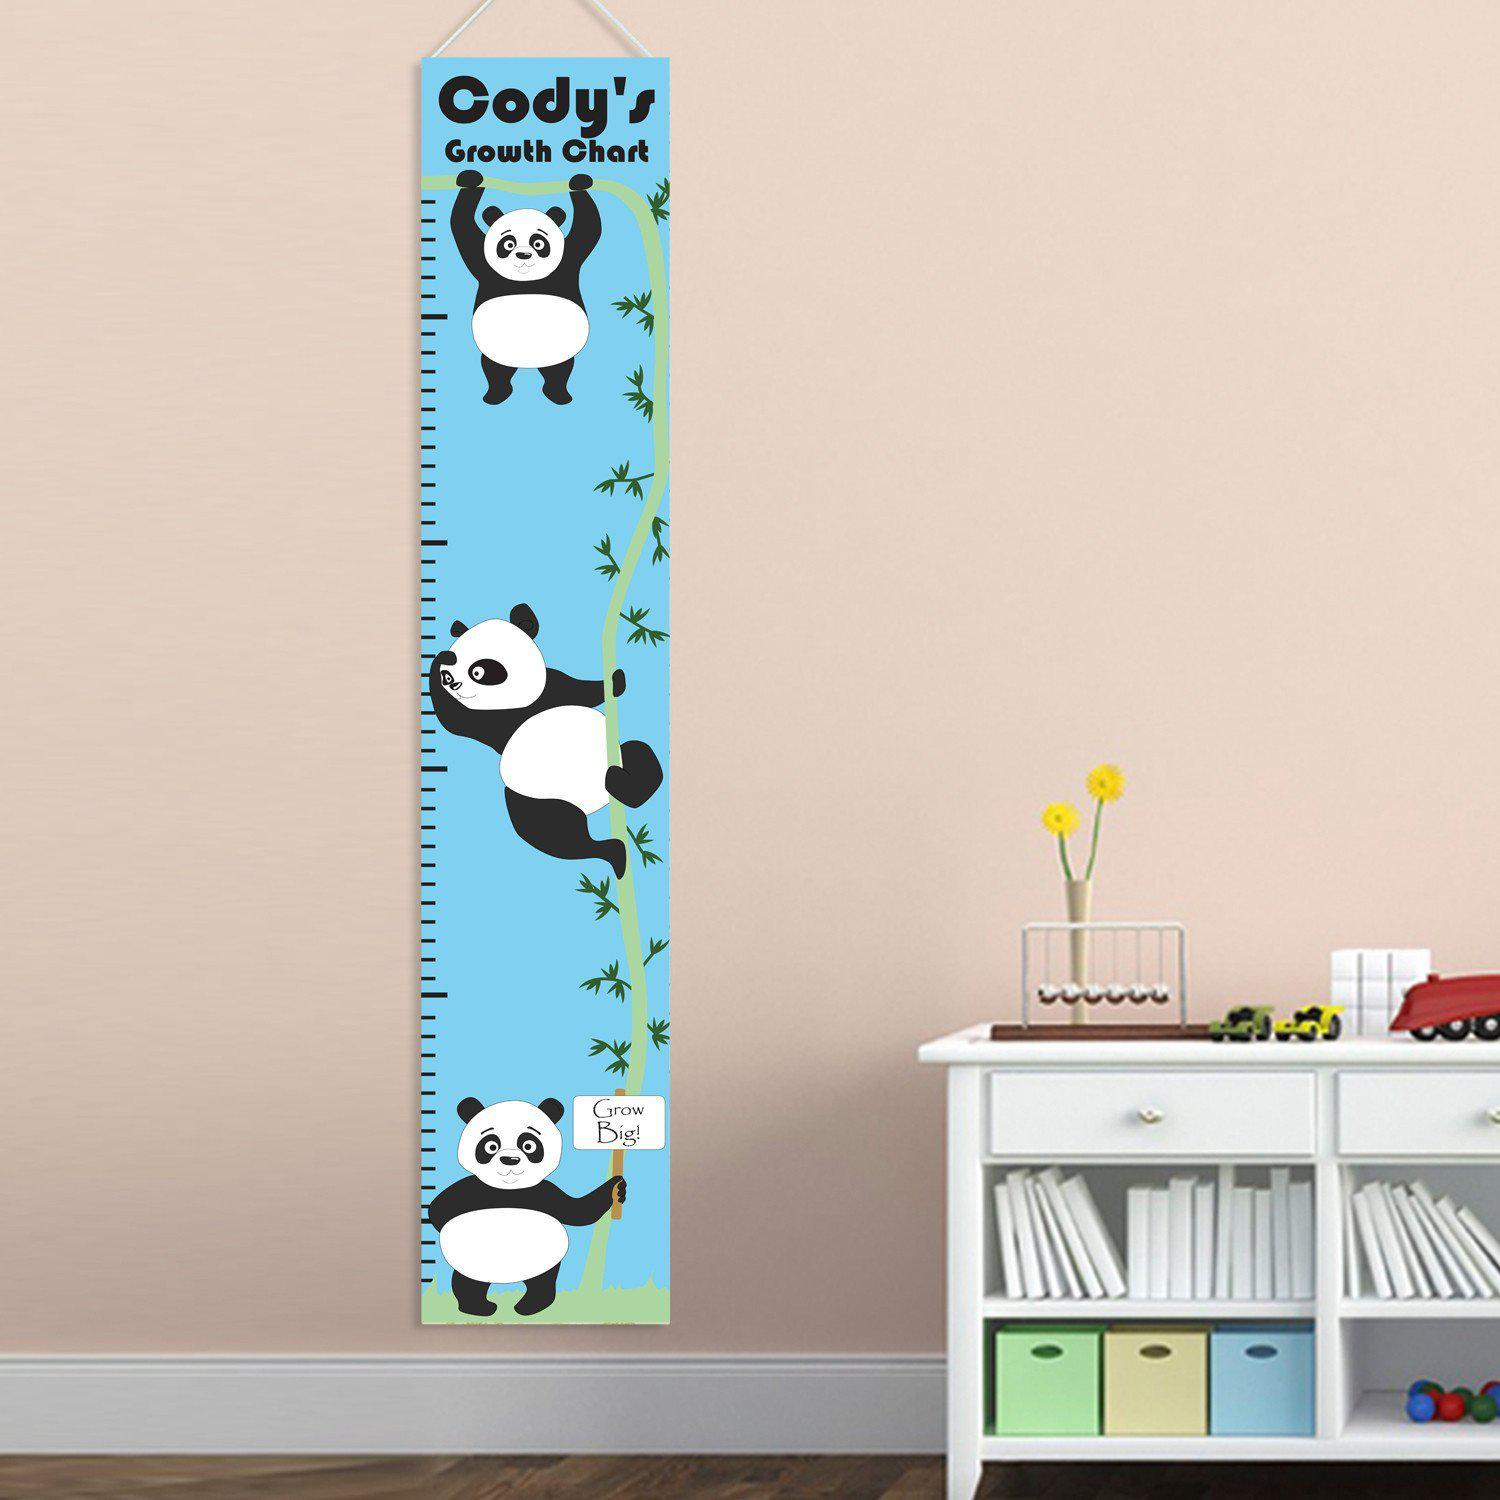 Personalized-Growth-Charts-for-Boys-Personalized-Height-Chart